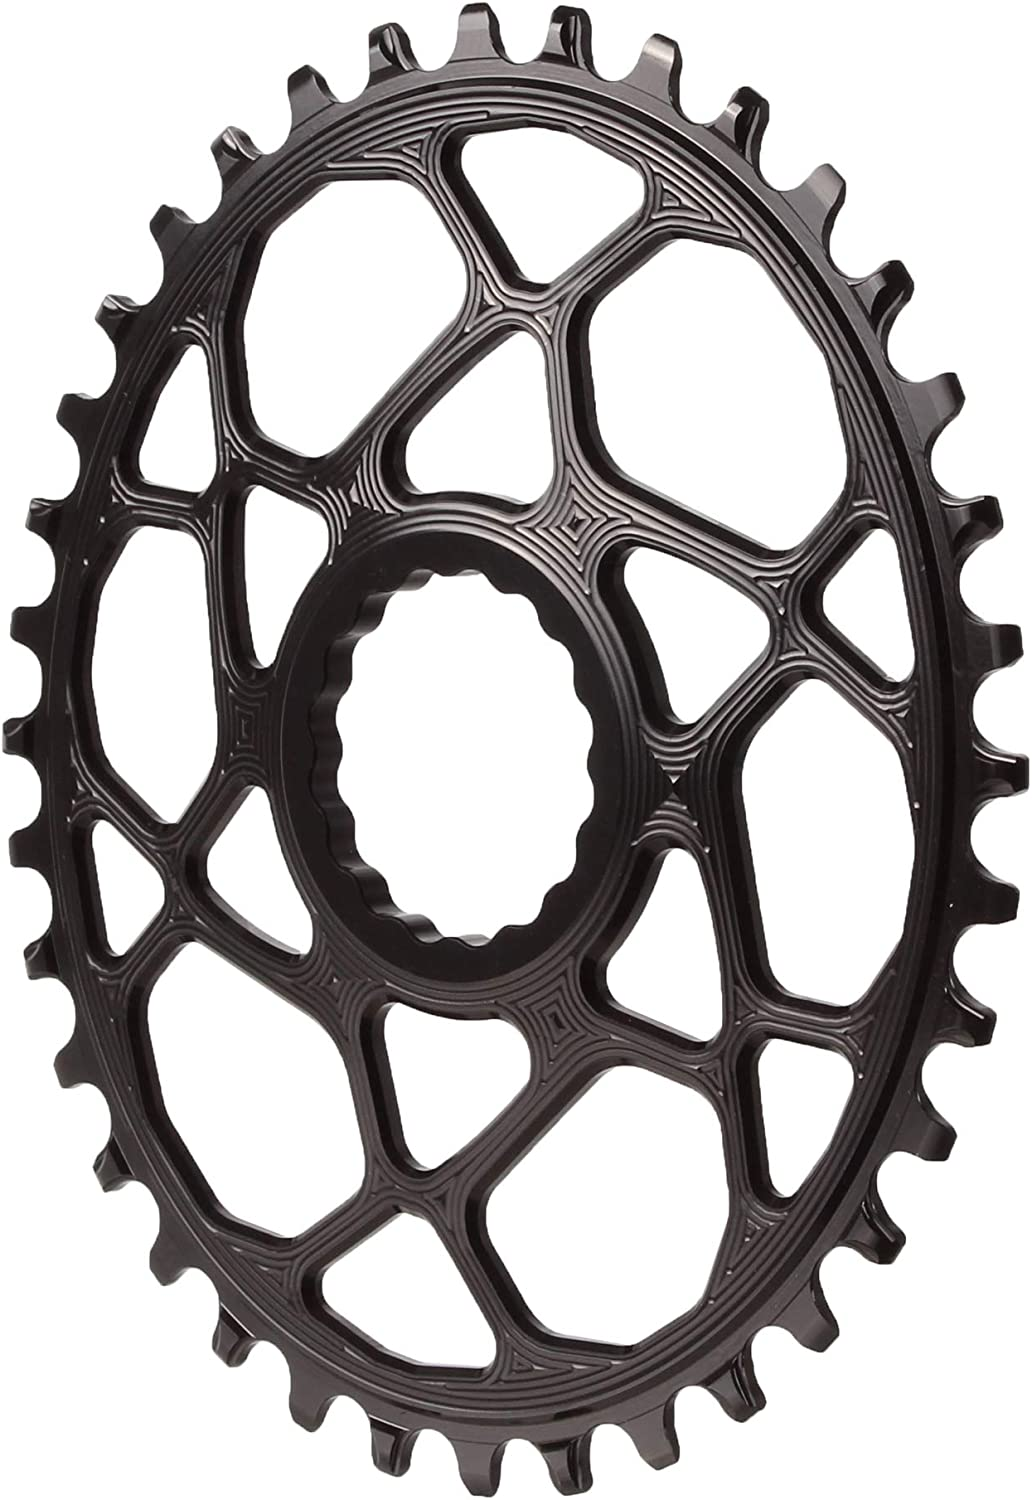 ABSOLUTE BLACK Chainring Absoluteblack Oval Direct Rf-Cinch Boost148 30T Bk